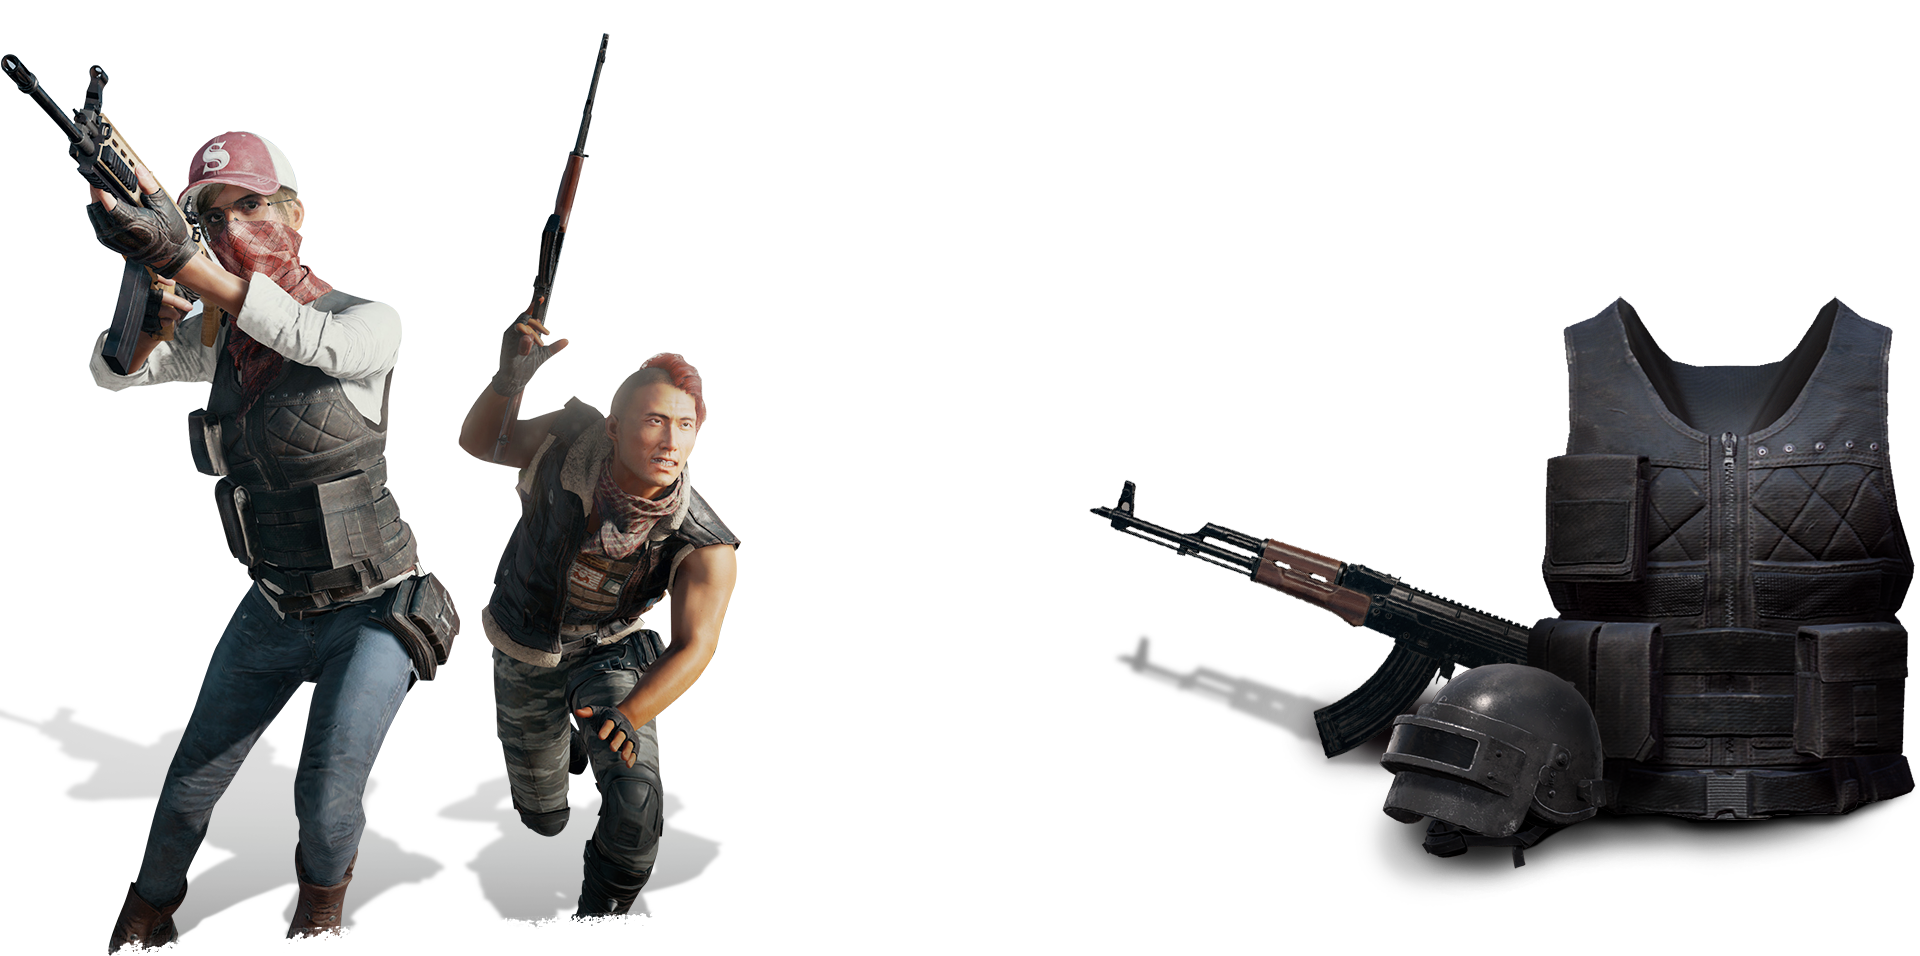 26 Pubg Helmets Wallpapers: Free Icons And PNG Backgrounds